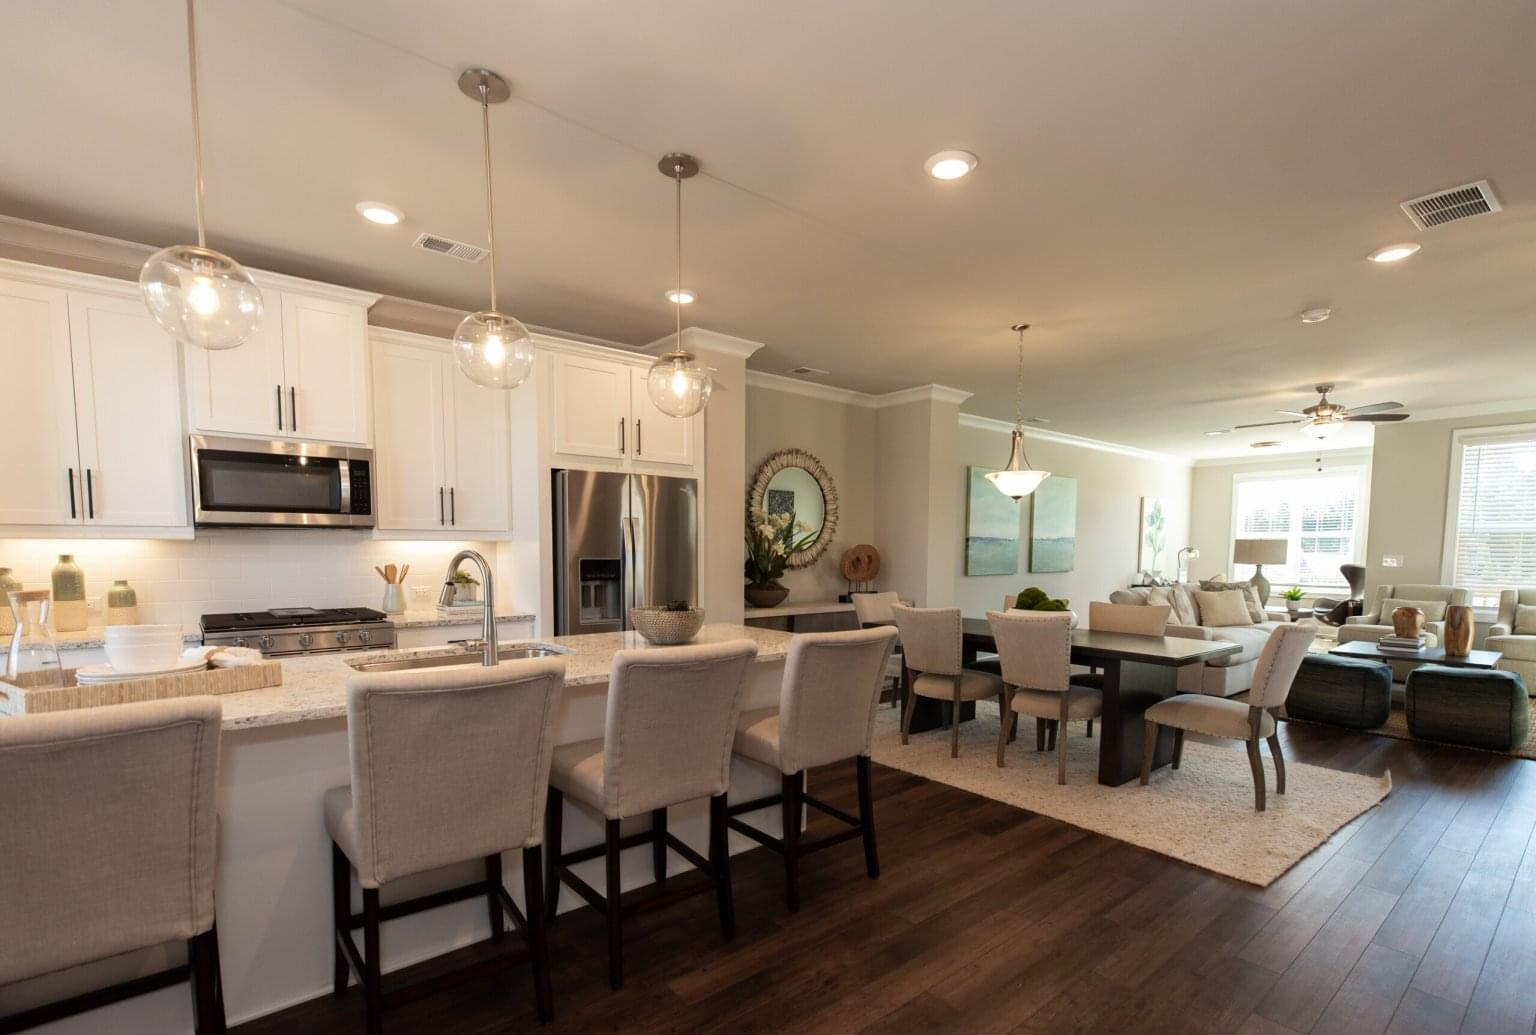 Visit the New Townhome Model Open at Greysolon in Duluth